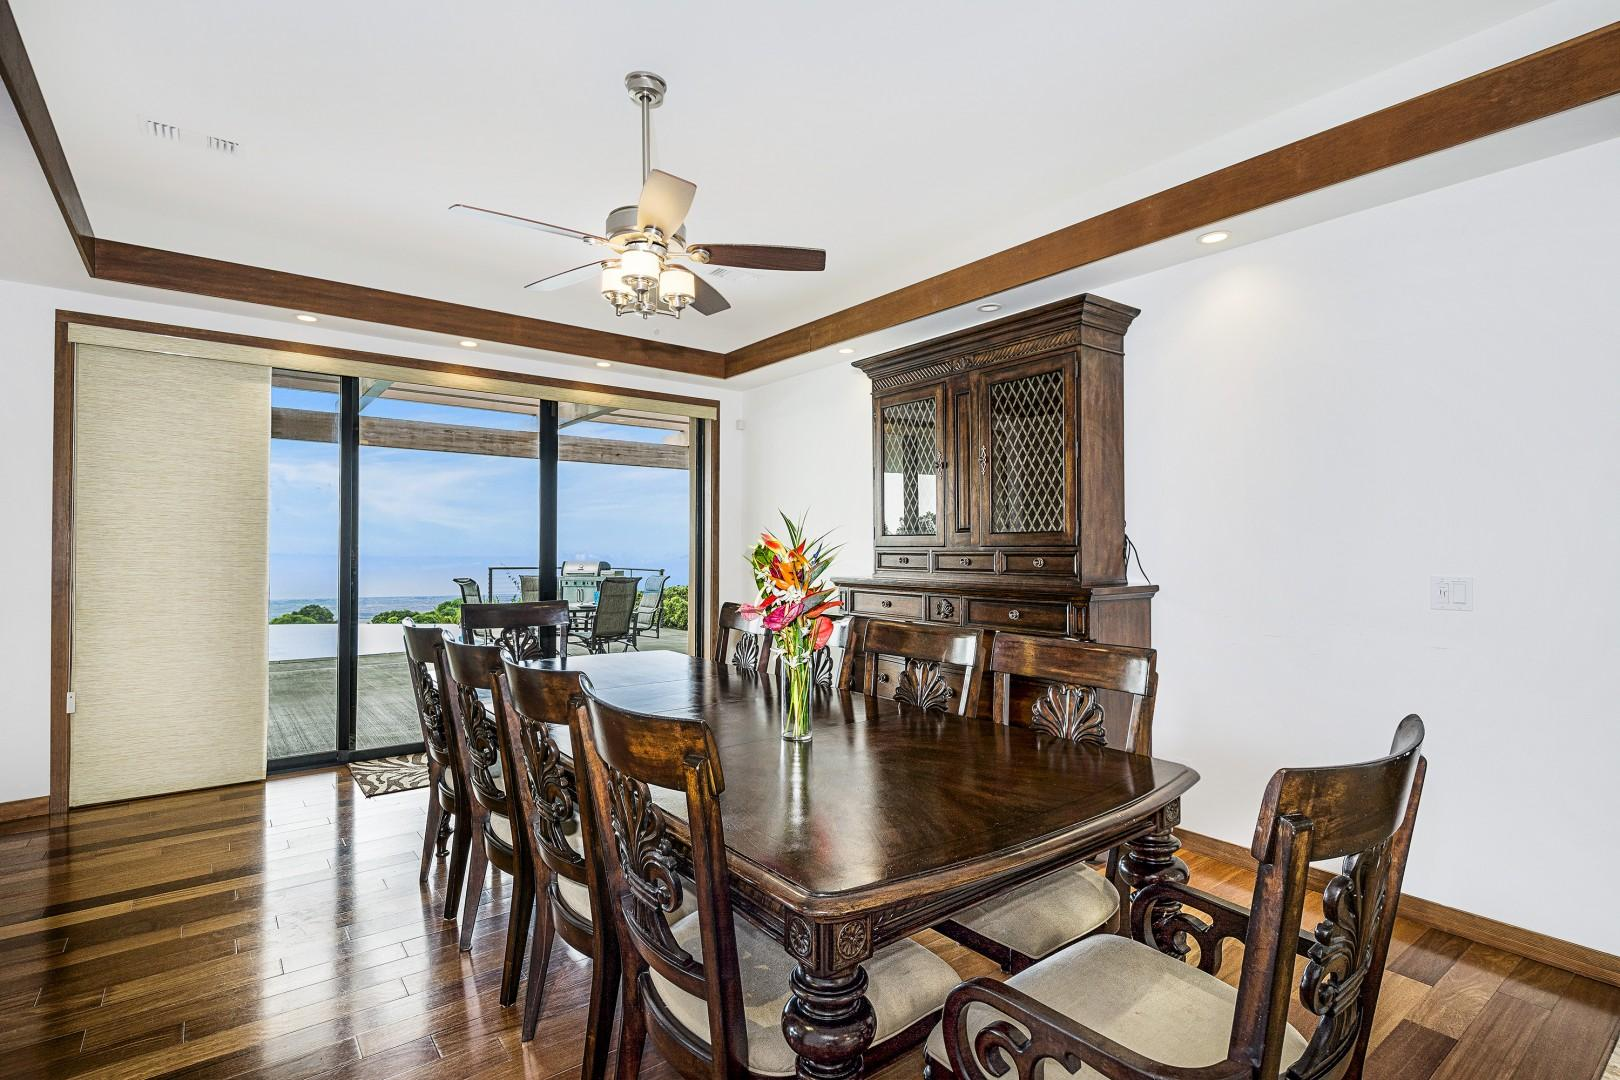 Dinning room steps from the kitchen!